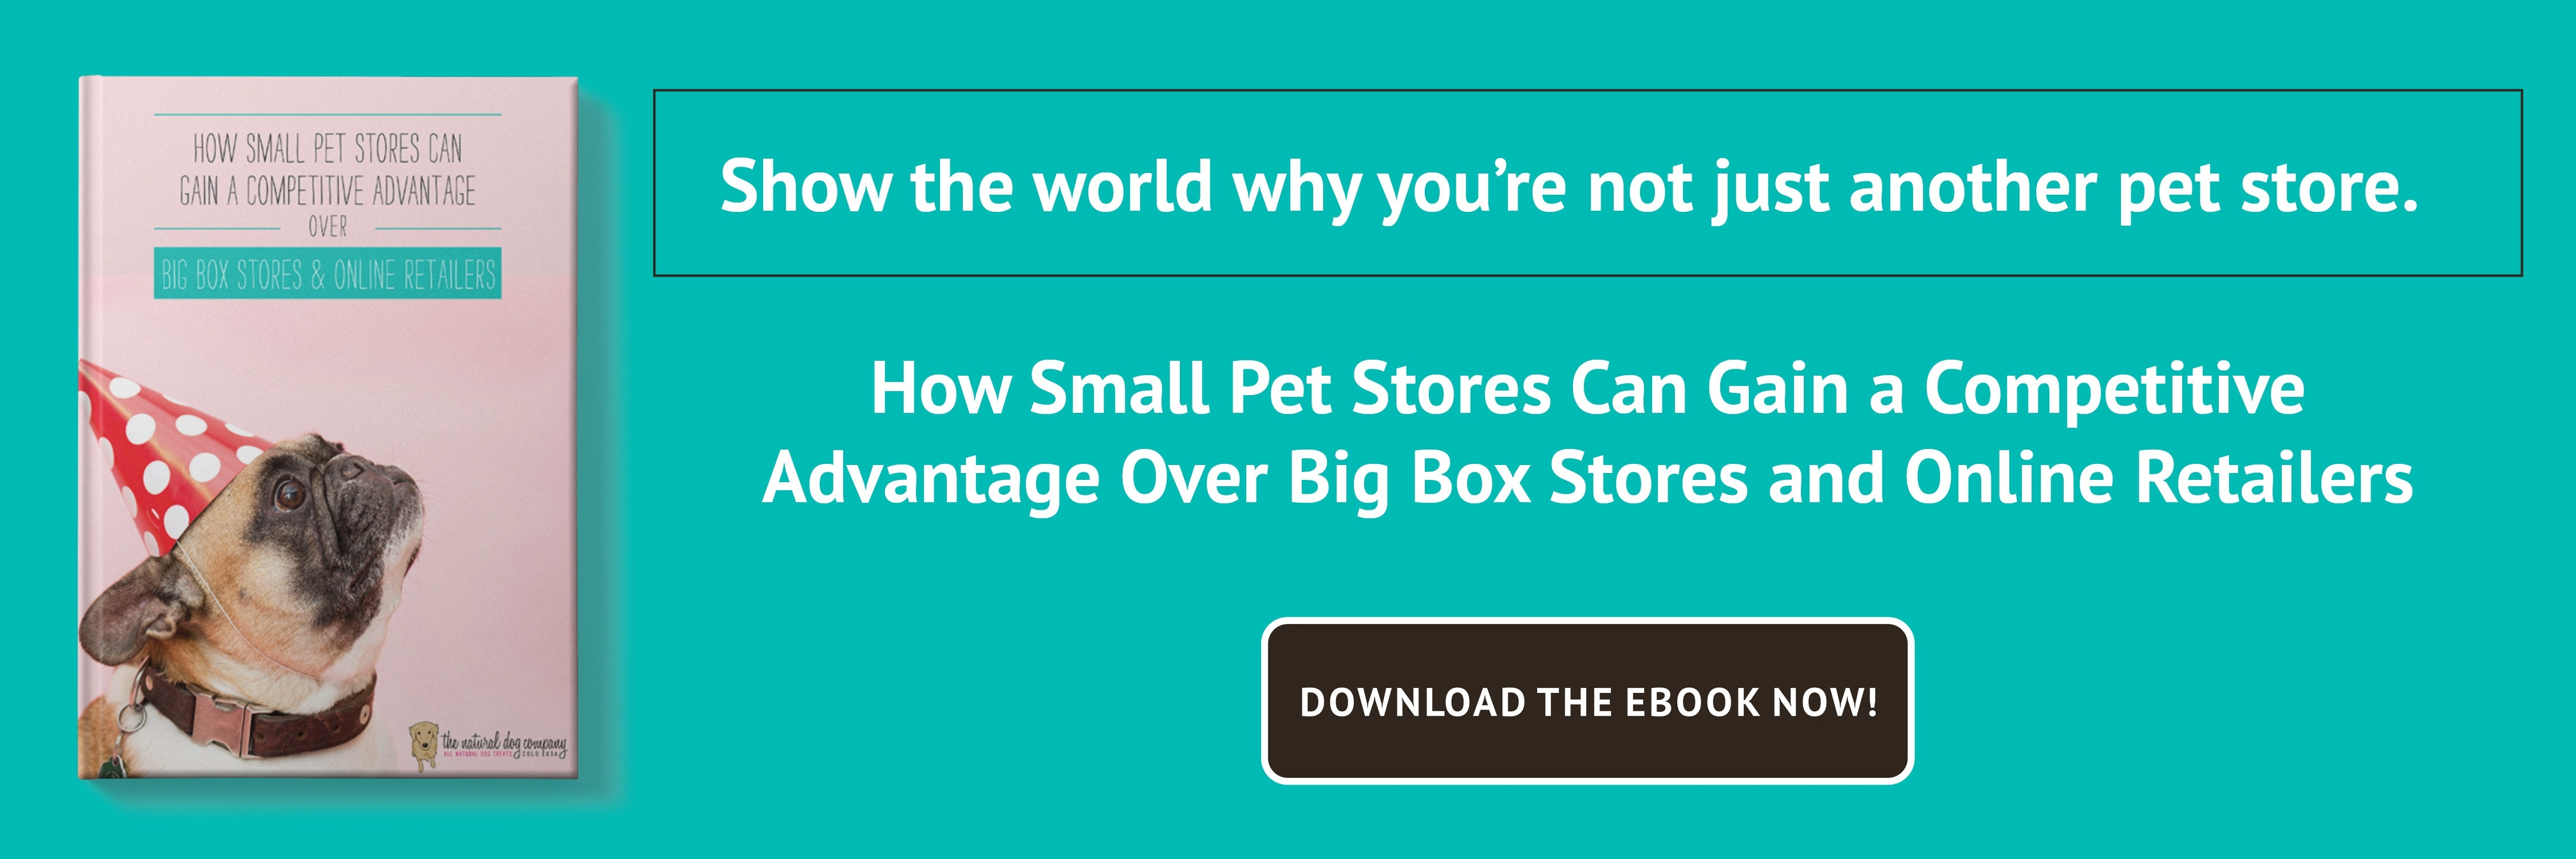 How Small Pet Stores Can Gain a Competitive Advantage Over Big Box Stores and Online Retailers